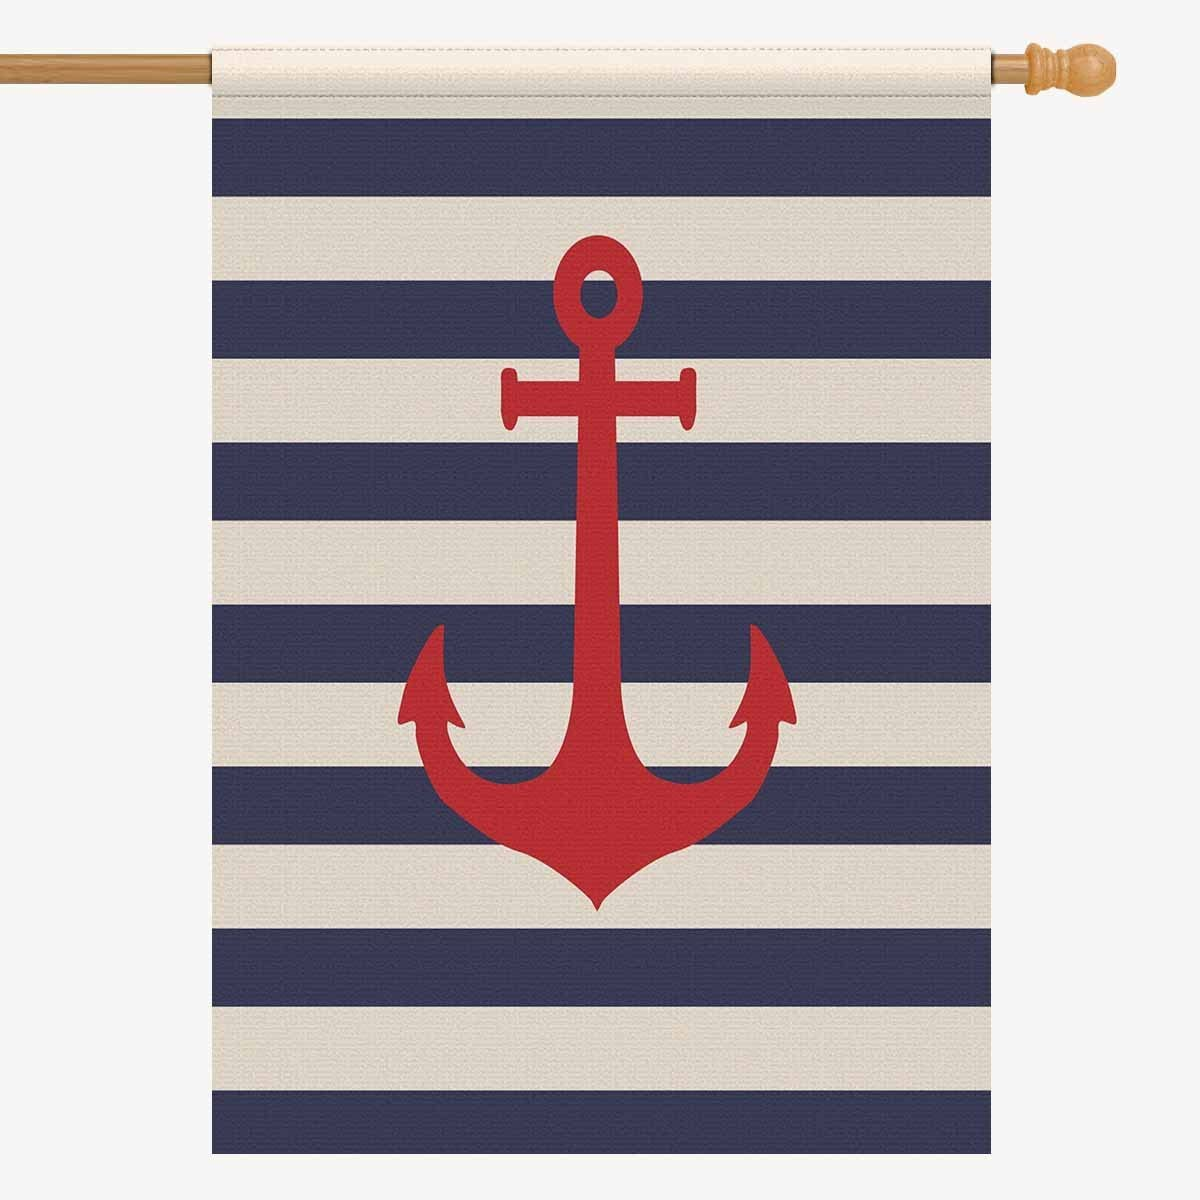 INTERESTPRINT House Flag Decorative Navy Blue Striped Marine Nautical Anchor for Garden and Home Decorations, Oxford Cloth Double Sided House Banner 28 x 40 Inches (Without Flagpole)